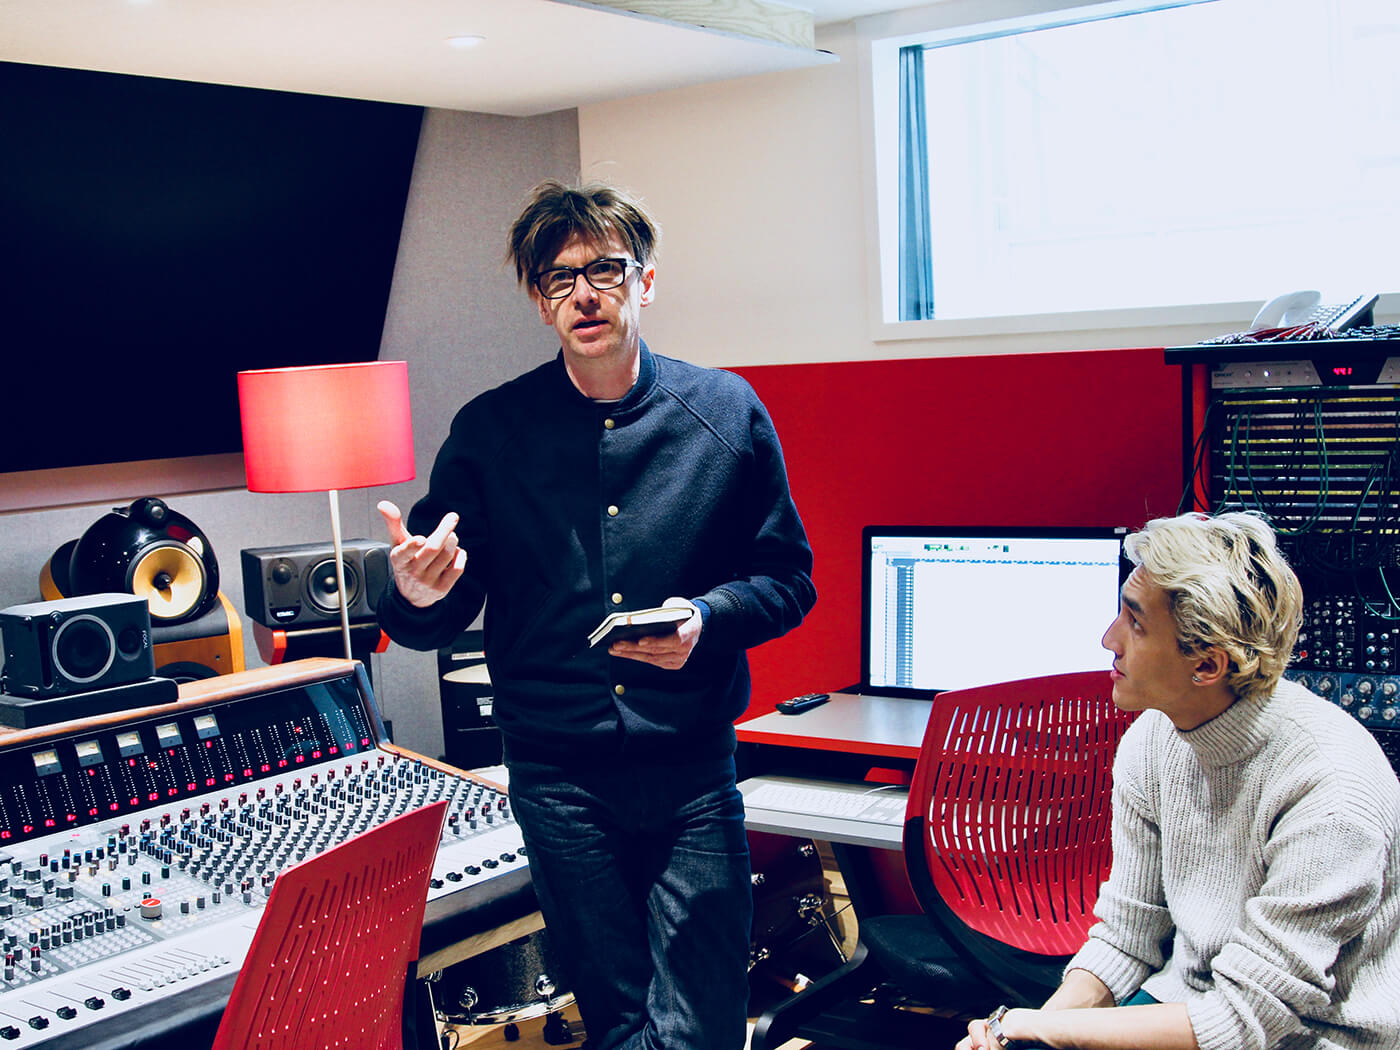 How to write better songs with pro advice from Jez Ashurst, Bernard Butler and more